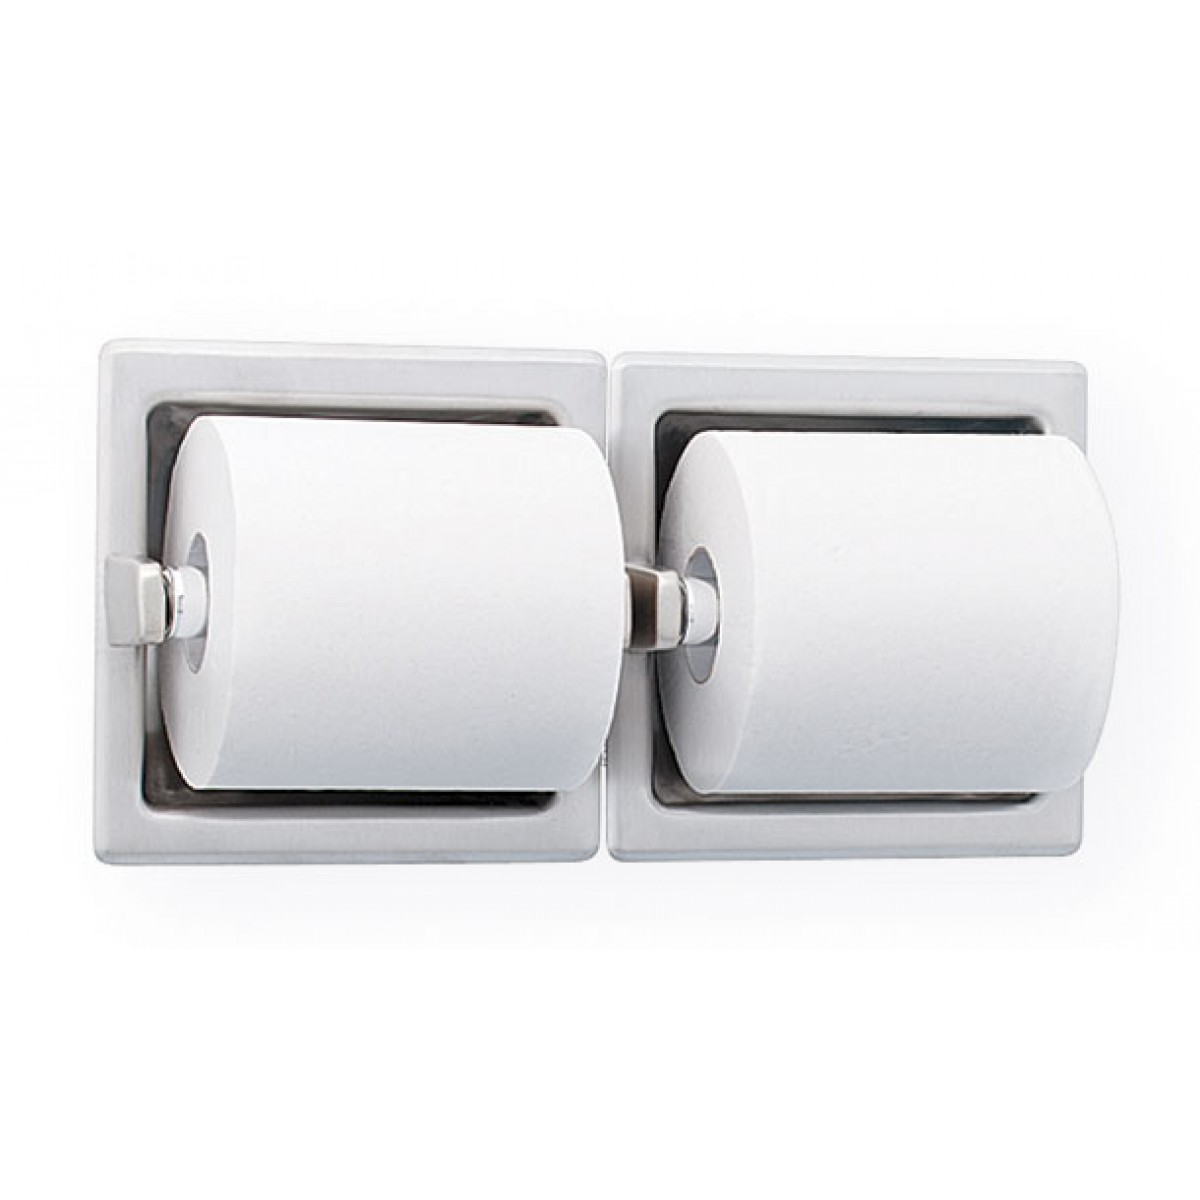 Bradley 5124 Recessed Double Roll Toilet Paper Dispenser